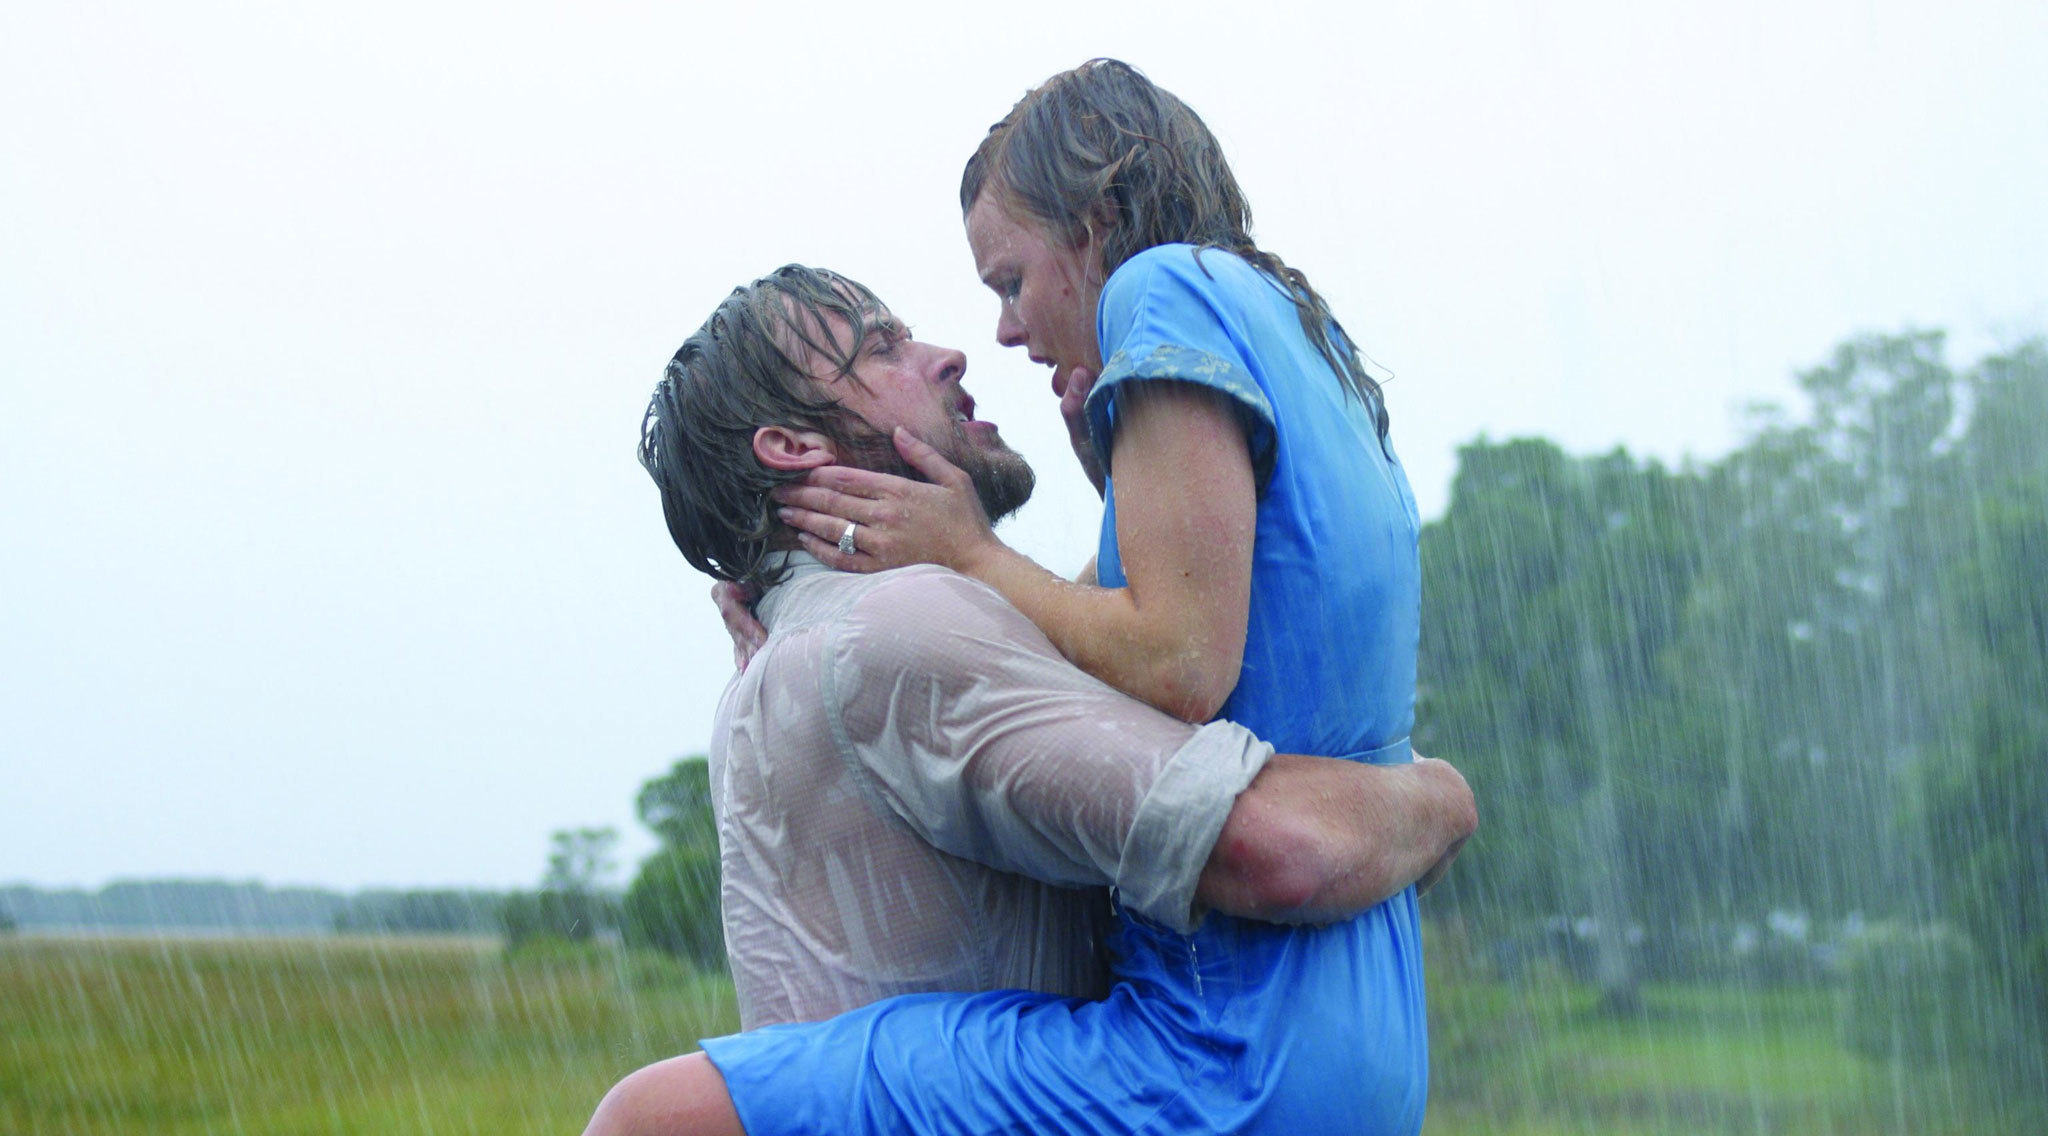 The worst romantic movies of all time